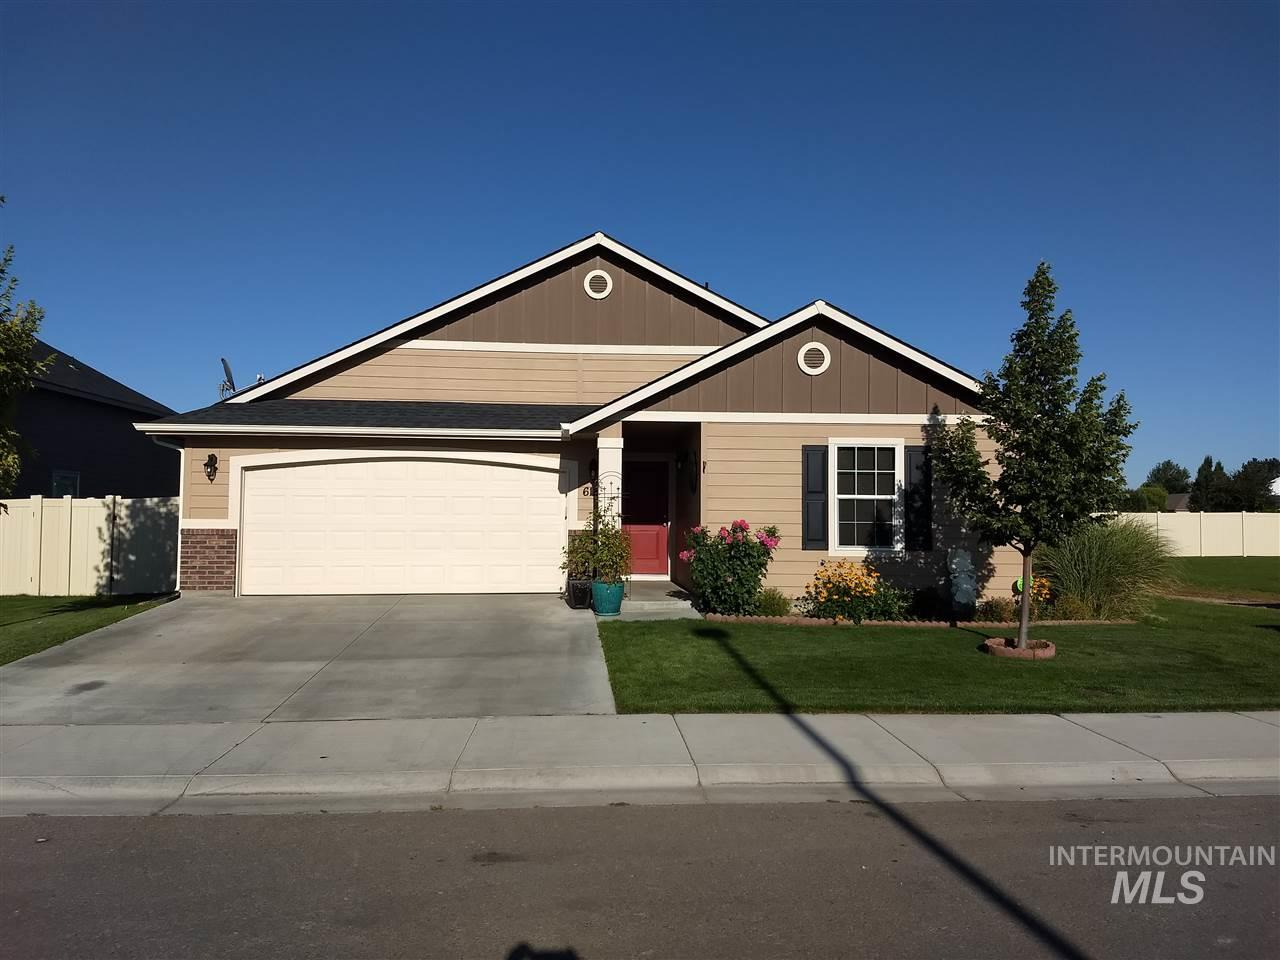 Hard to find starter home in Irvine Meadows Sub. 3 bedrooms, 2 bath clean 1445 sq ft well maintained home. This 2015 CBH Arden 1416 has a larger open kitchen concept and living room with split-bedroom design.